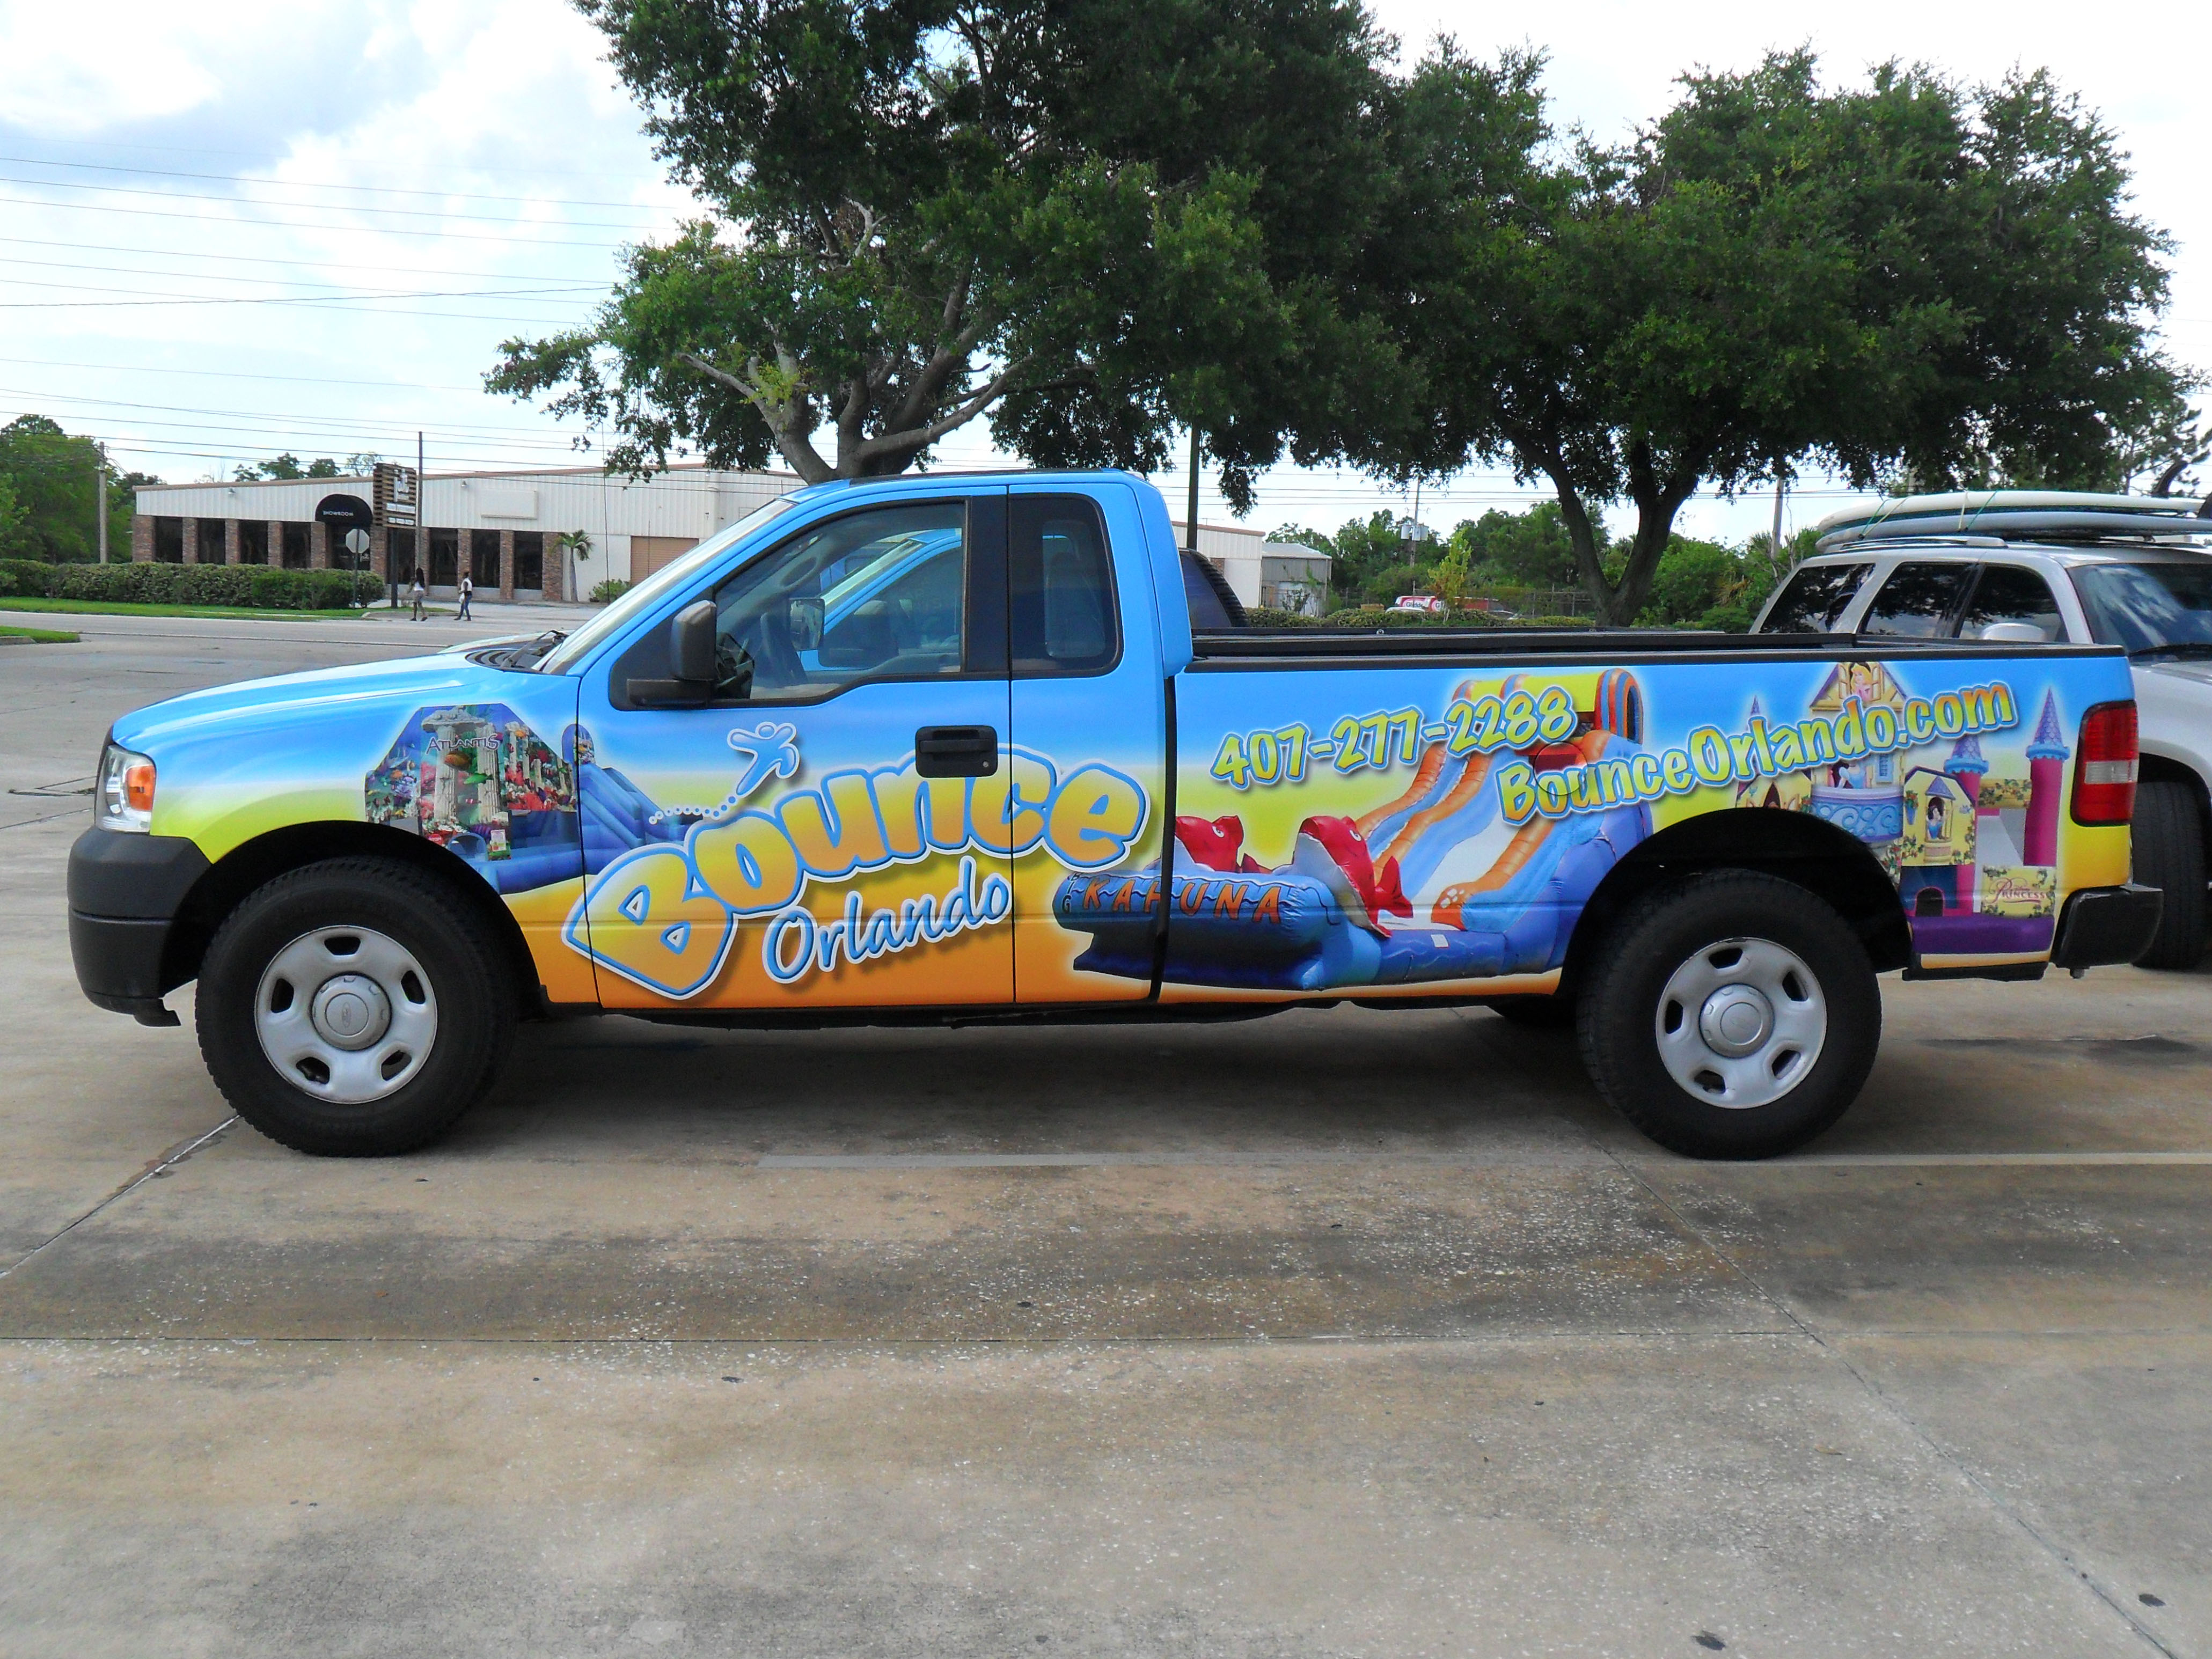 Sponsorship marketing used on truck for Bounce Orlando